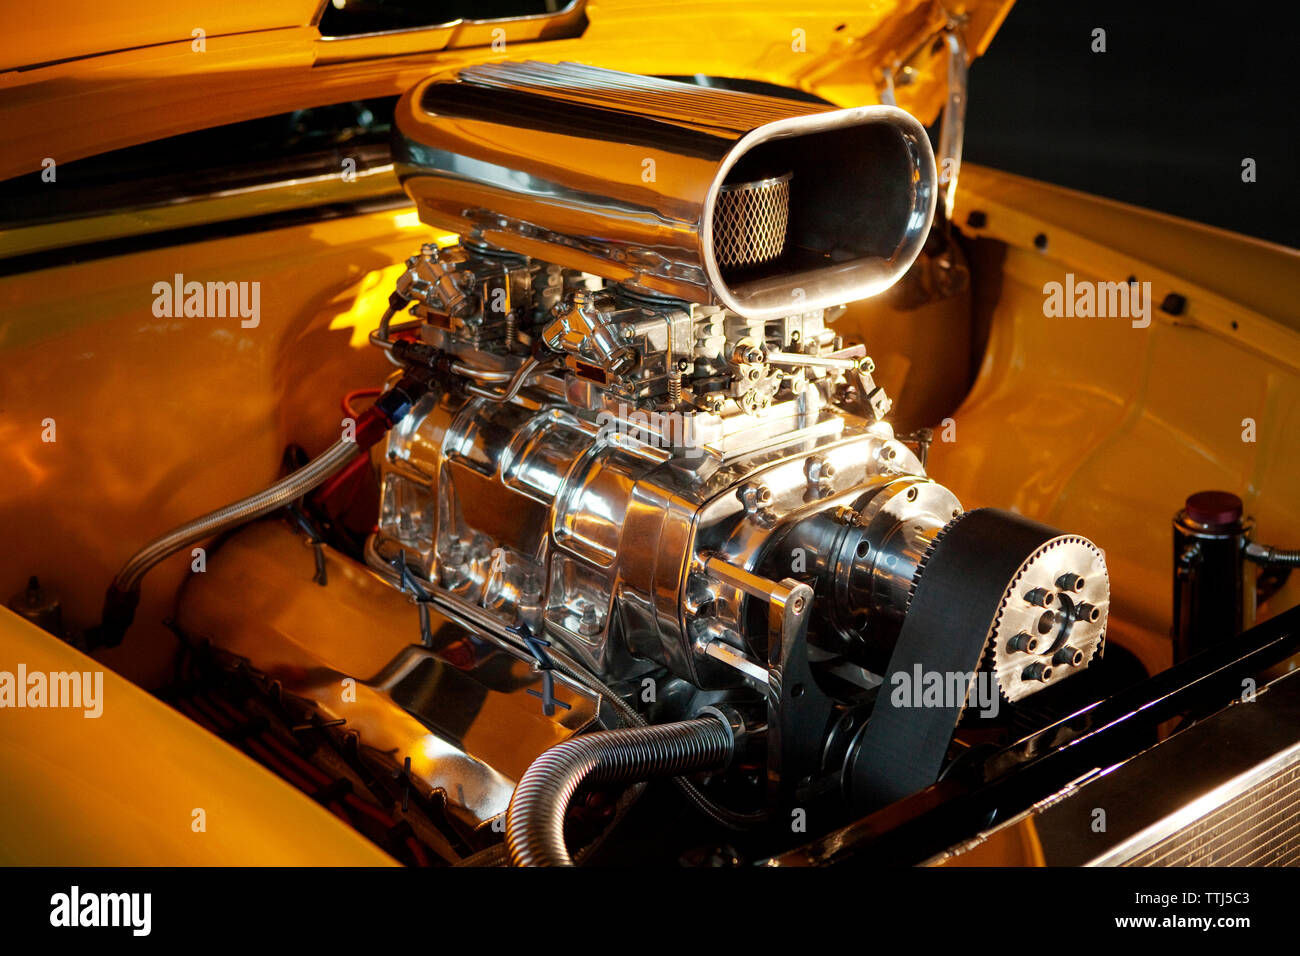 High angle view of 1955 chevrolet chrome engine - Stock Image